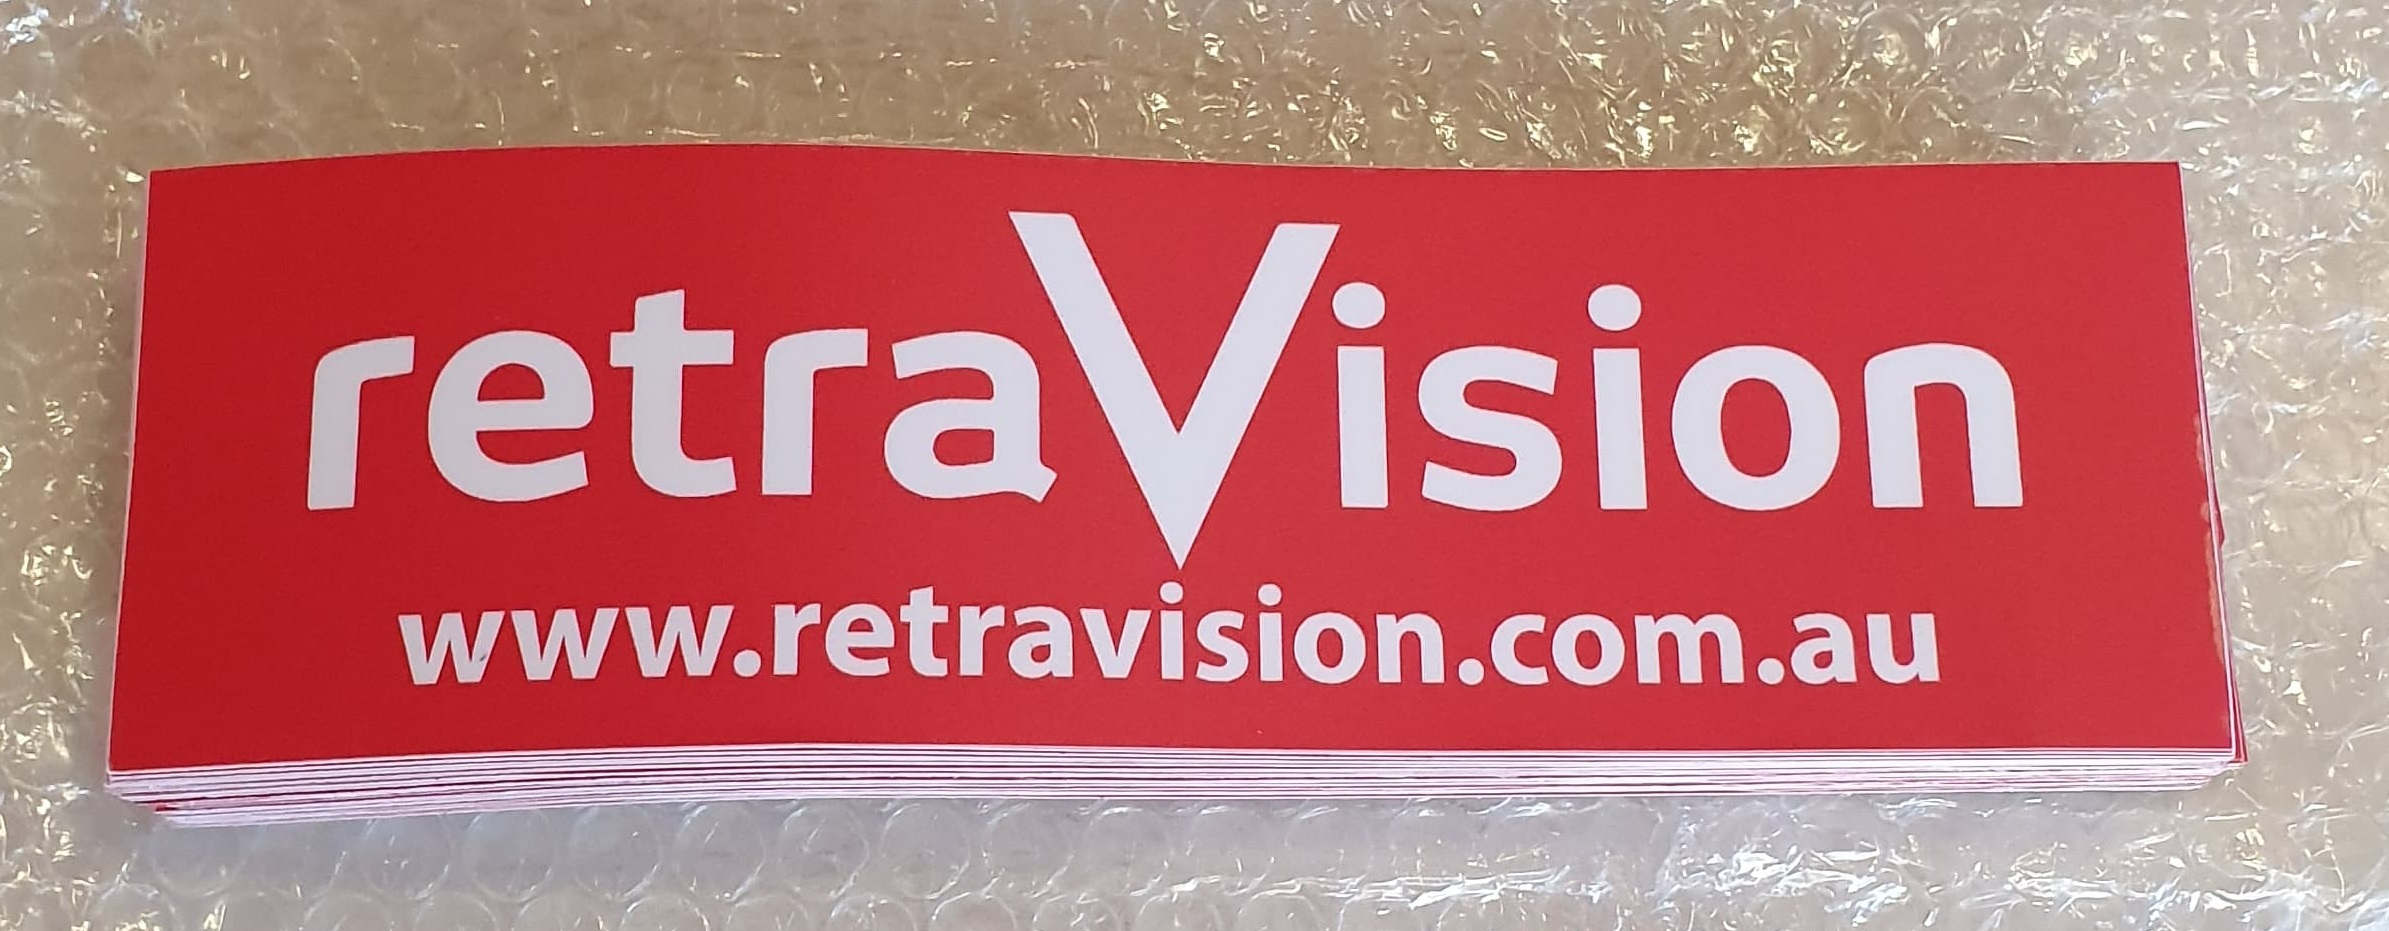 Retravision Bumper Sticker